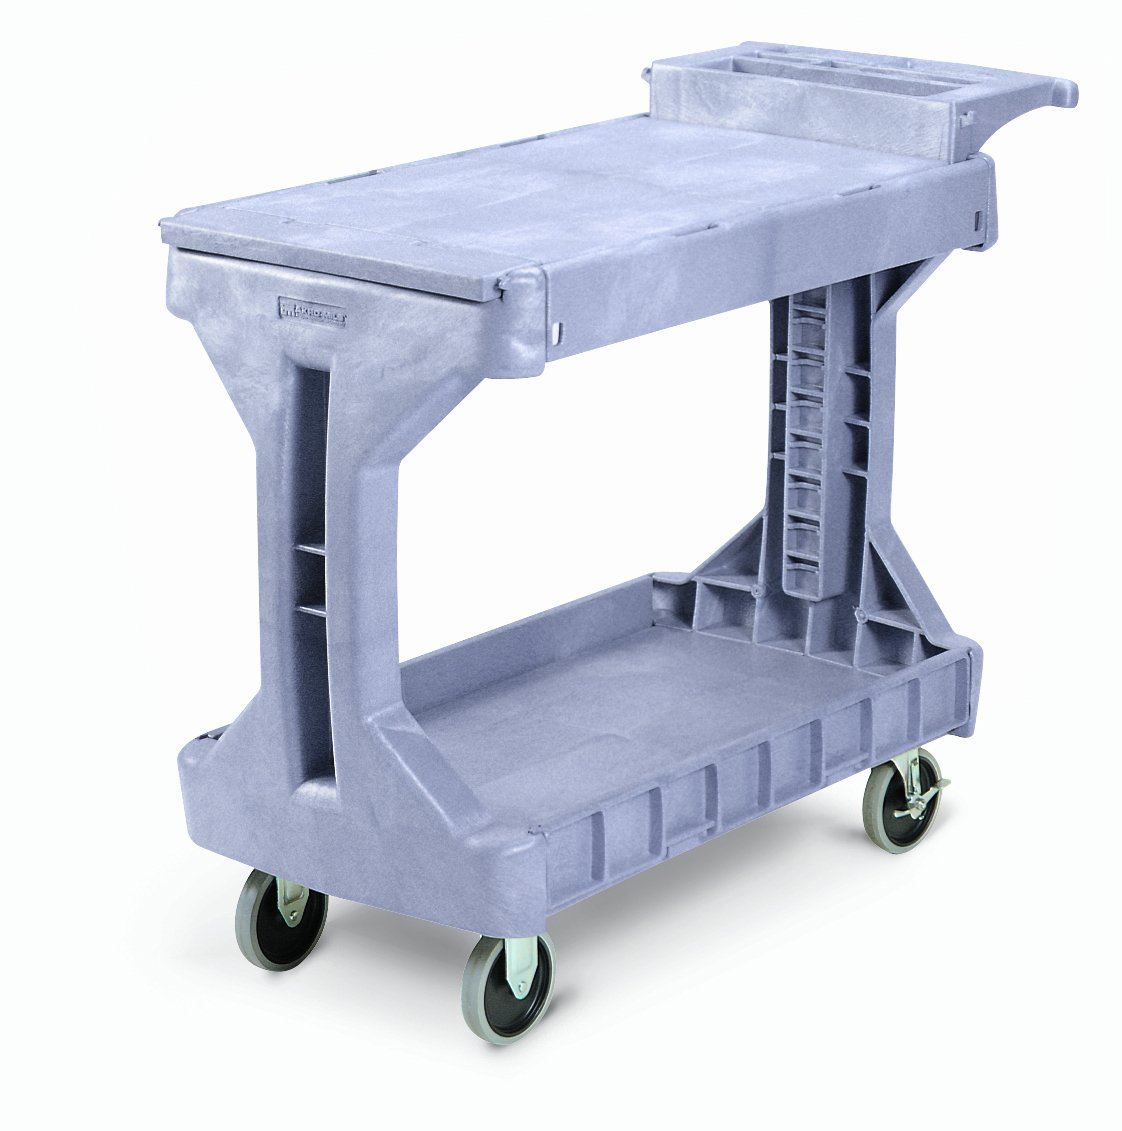 Akro-Mils 30930 2 Shelf Plastic Utility and Service ProCart, 400 lb capacity, Small, Grey